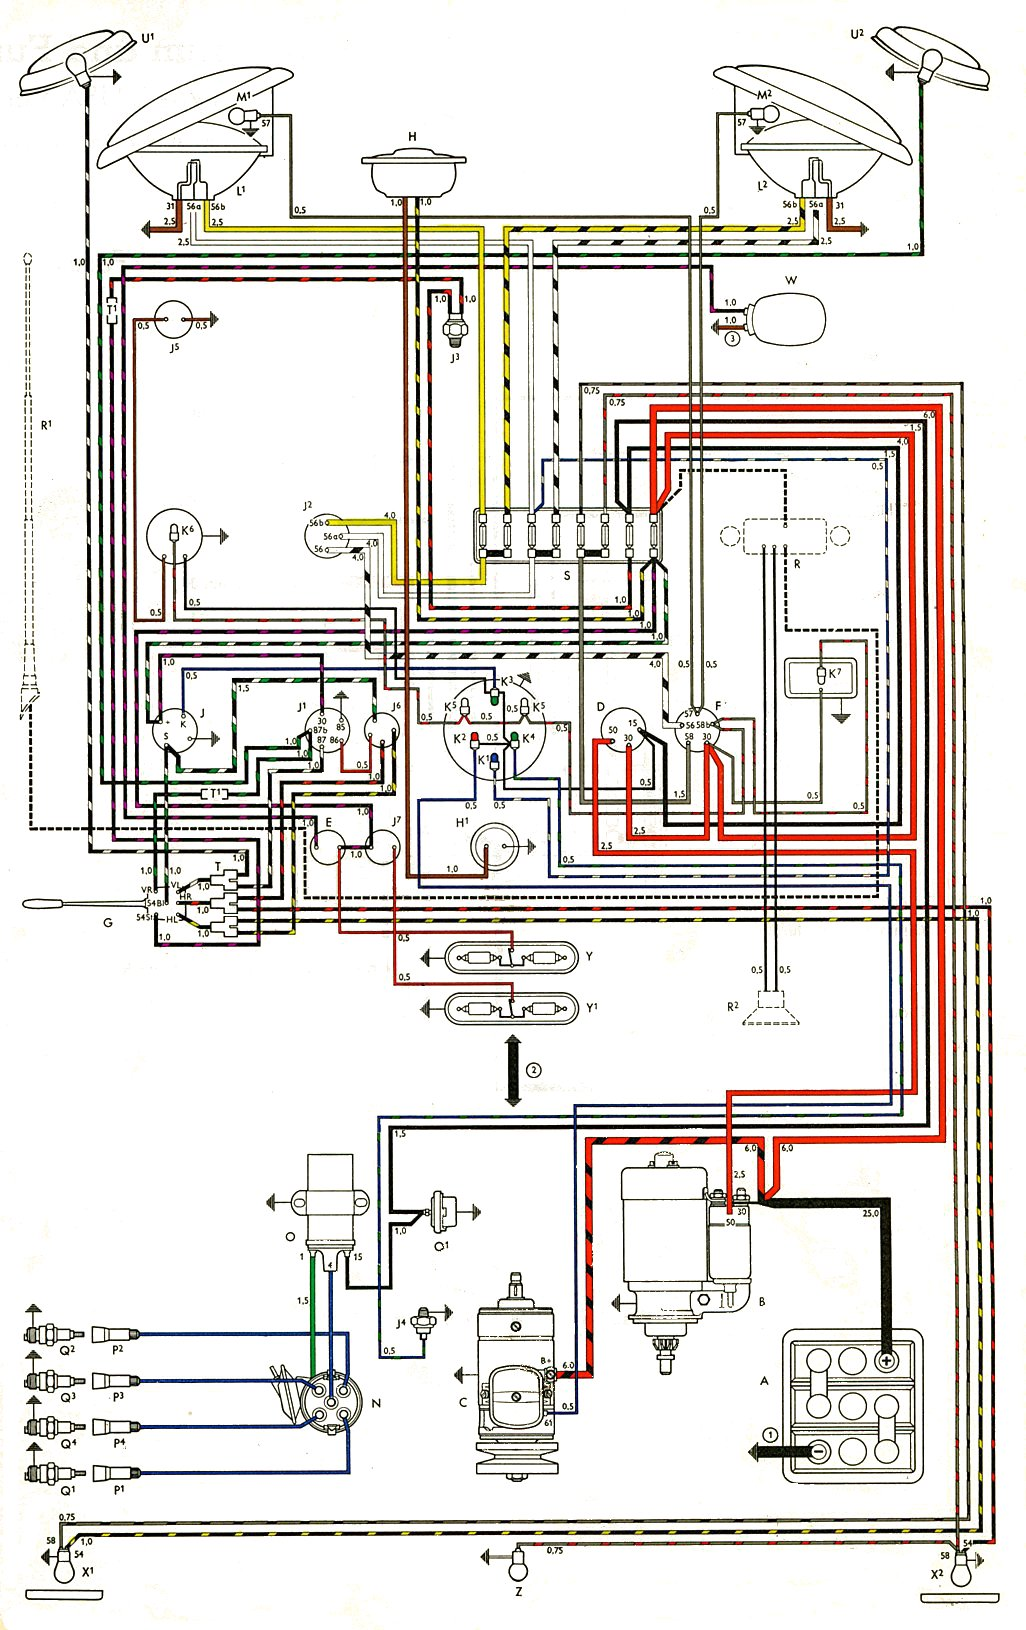 thesamba.com :: type 2 wiring diagrams vw van fuse box location 1993